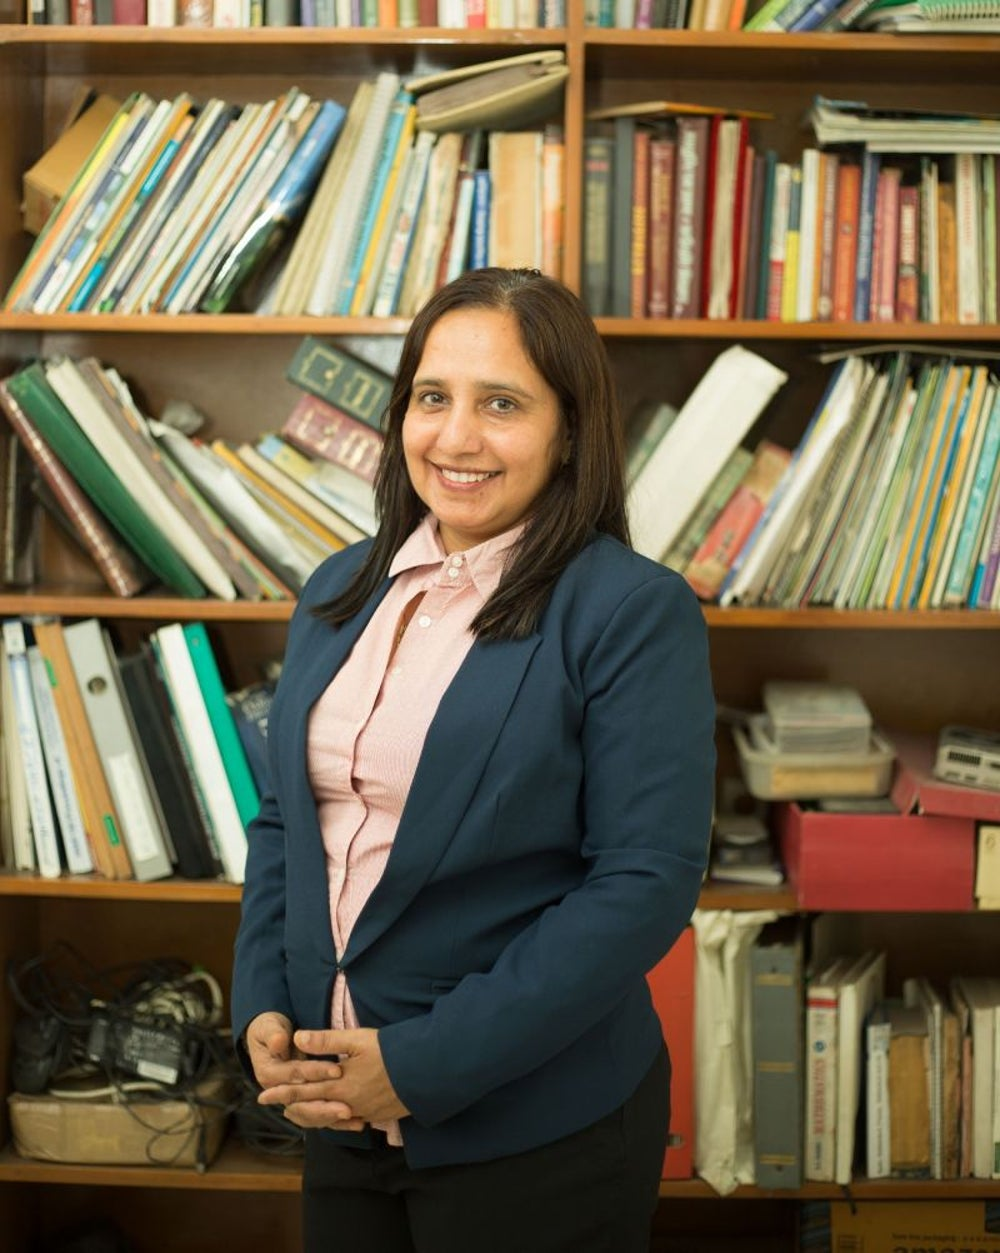 Dr. Vibha Tripathi, Co-founder, Swajal Water